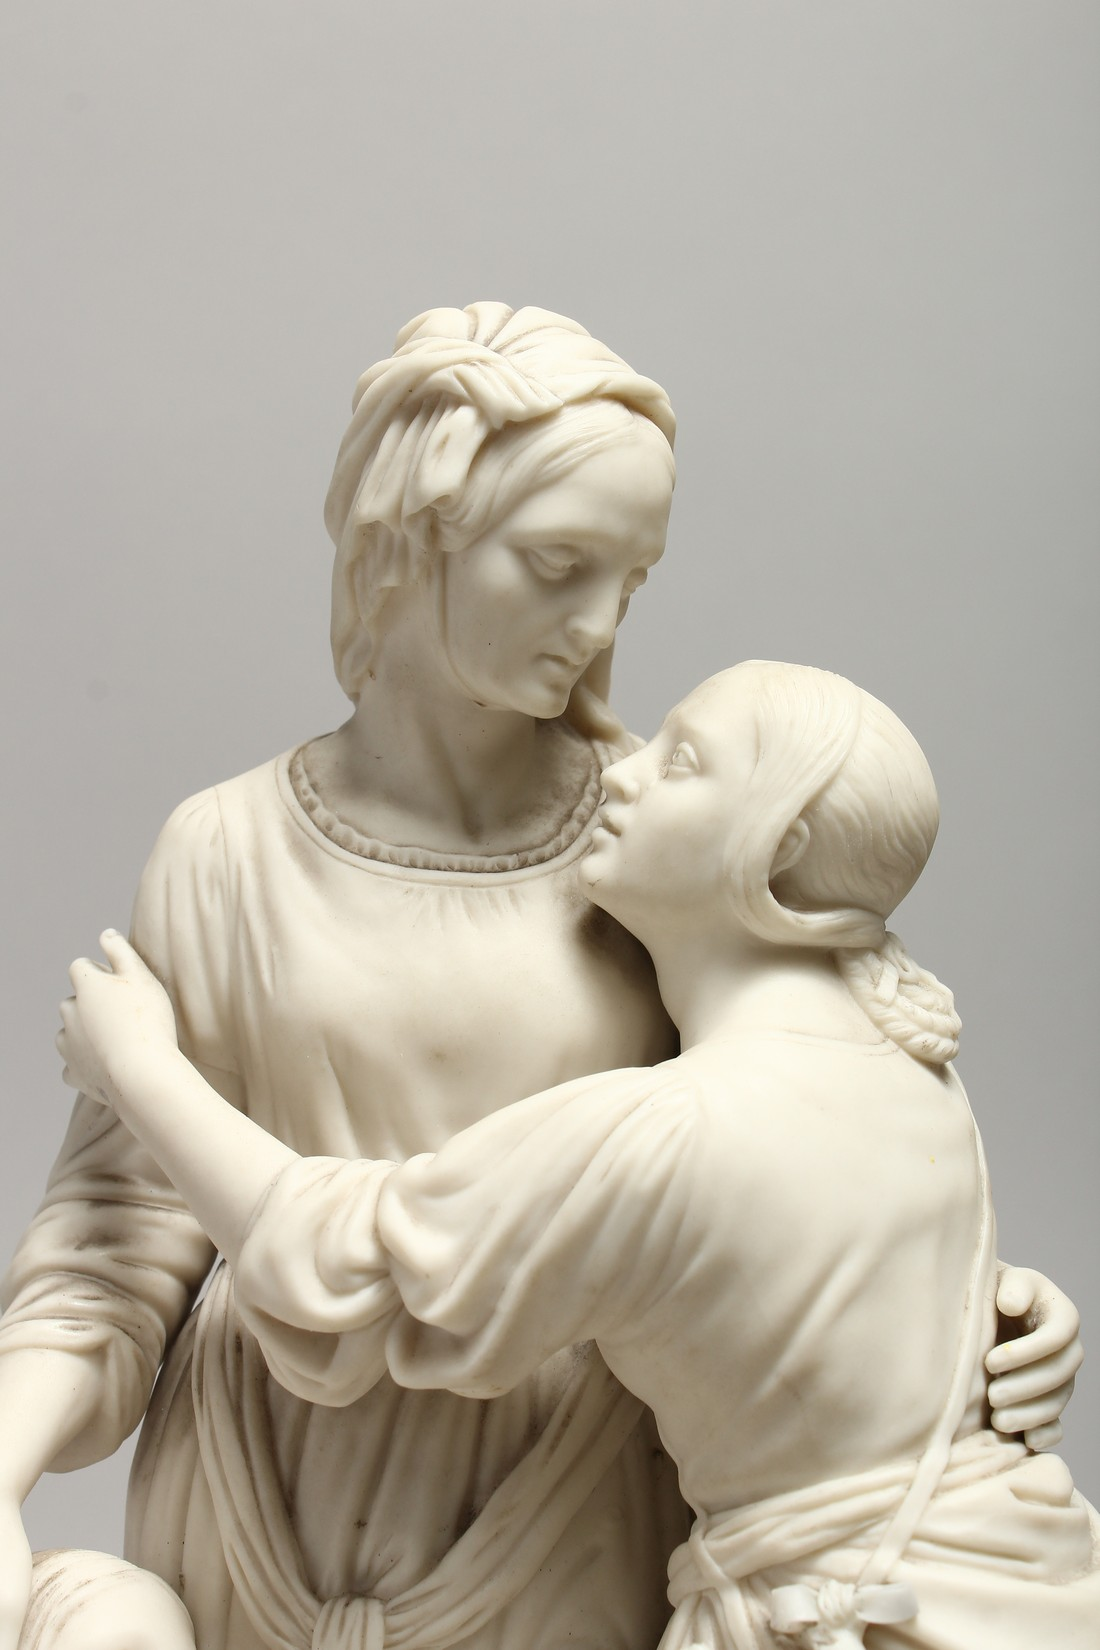 """A LATE 19TH CENTURY PARIAN WARE GROUP """"NAOMI AND HER DAUGHTER IN LAW"""". 13 ins high. - Image 2 of 8"""